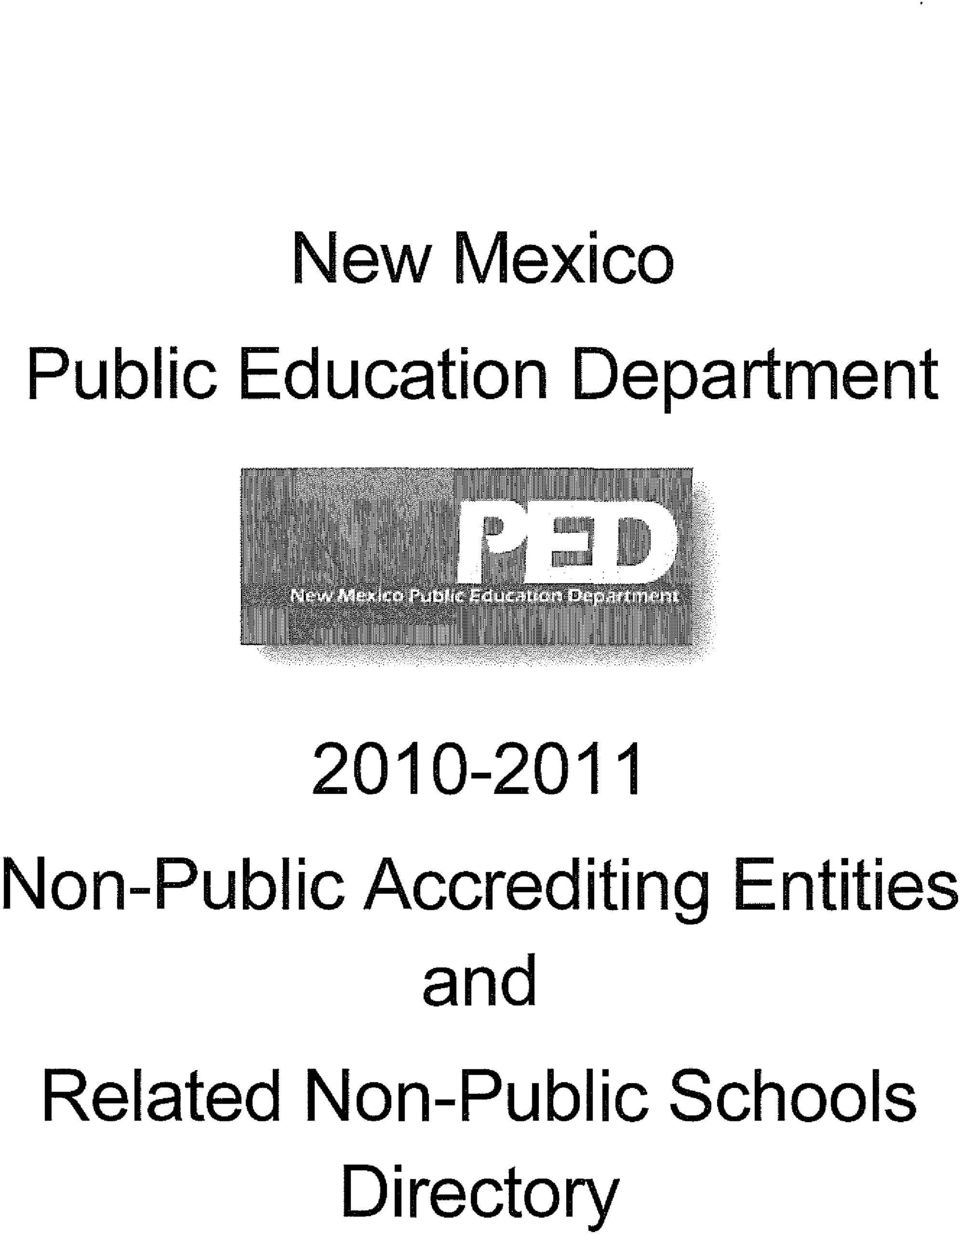 Non-Public Accrediting